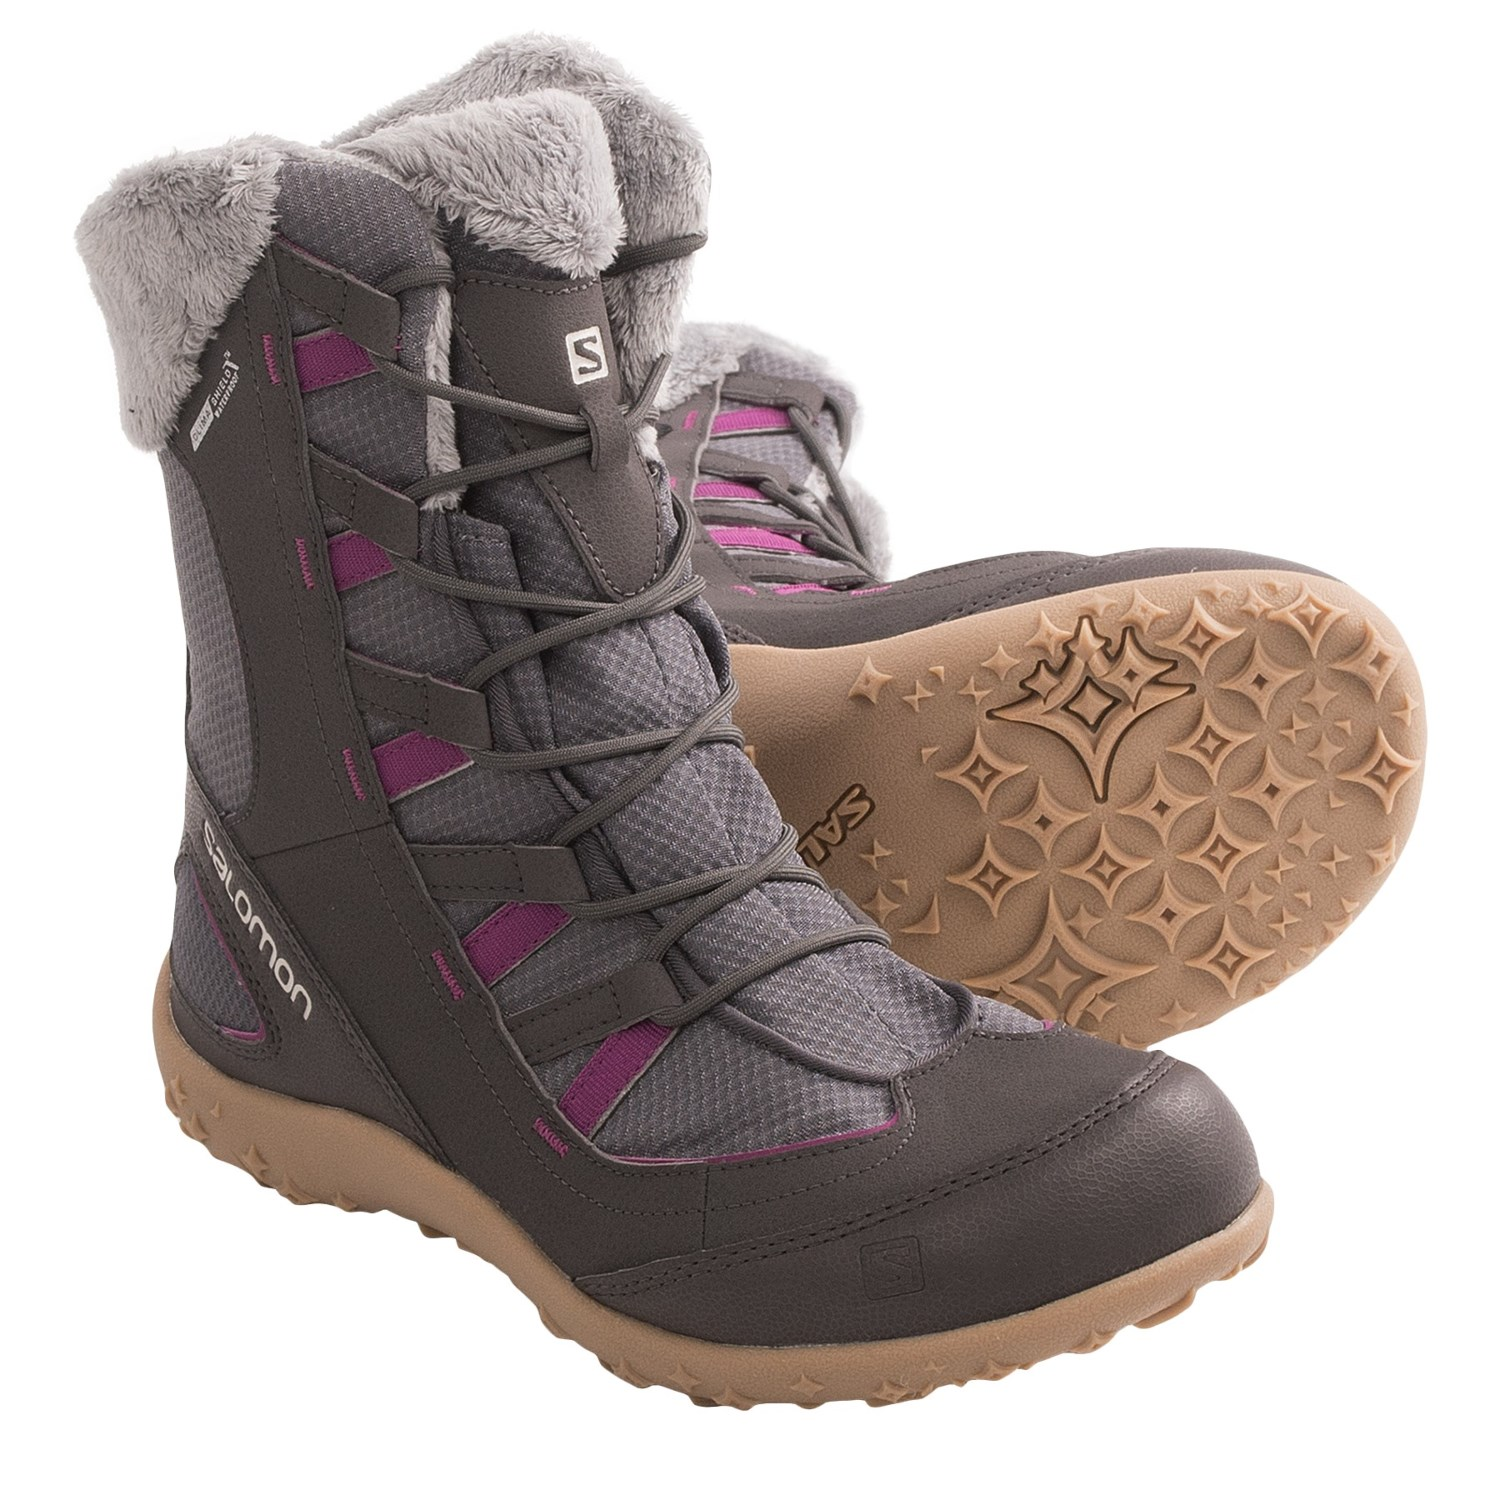 Cool I Have Been Wearing These Kamik Pinot Warm Fashionable Winter Boots For Women On Repeat Since I Got Them If You Know One Thing About Me, Its That I Detest Cold Weather Something You Dont Know, Is That My Mom Broke Her Leg